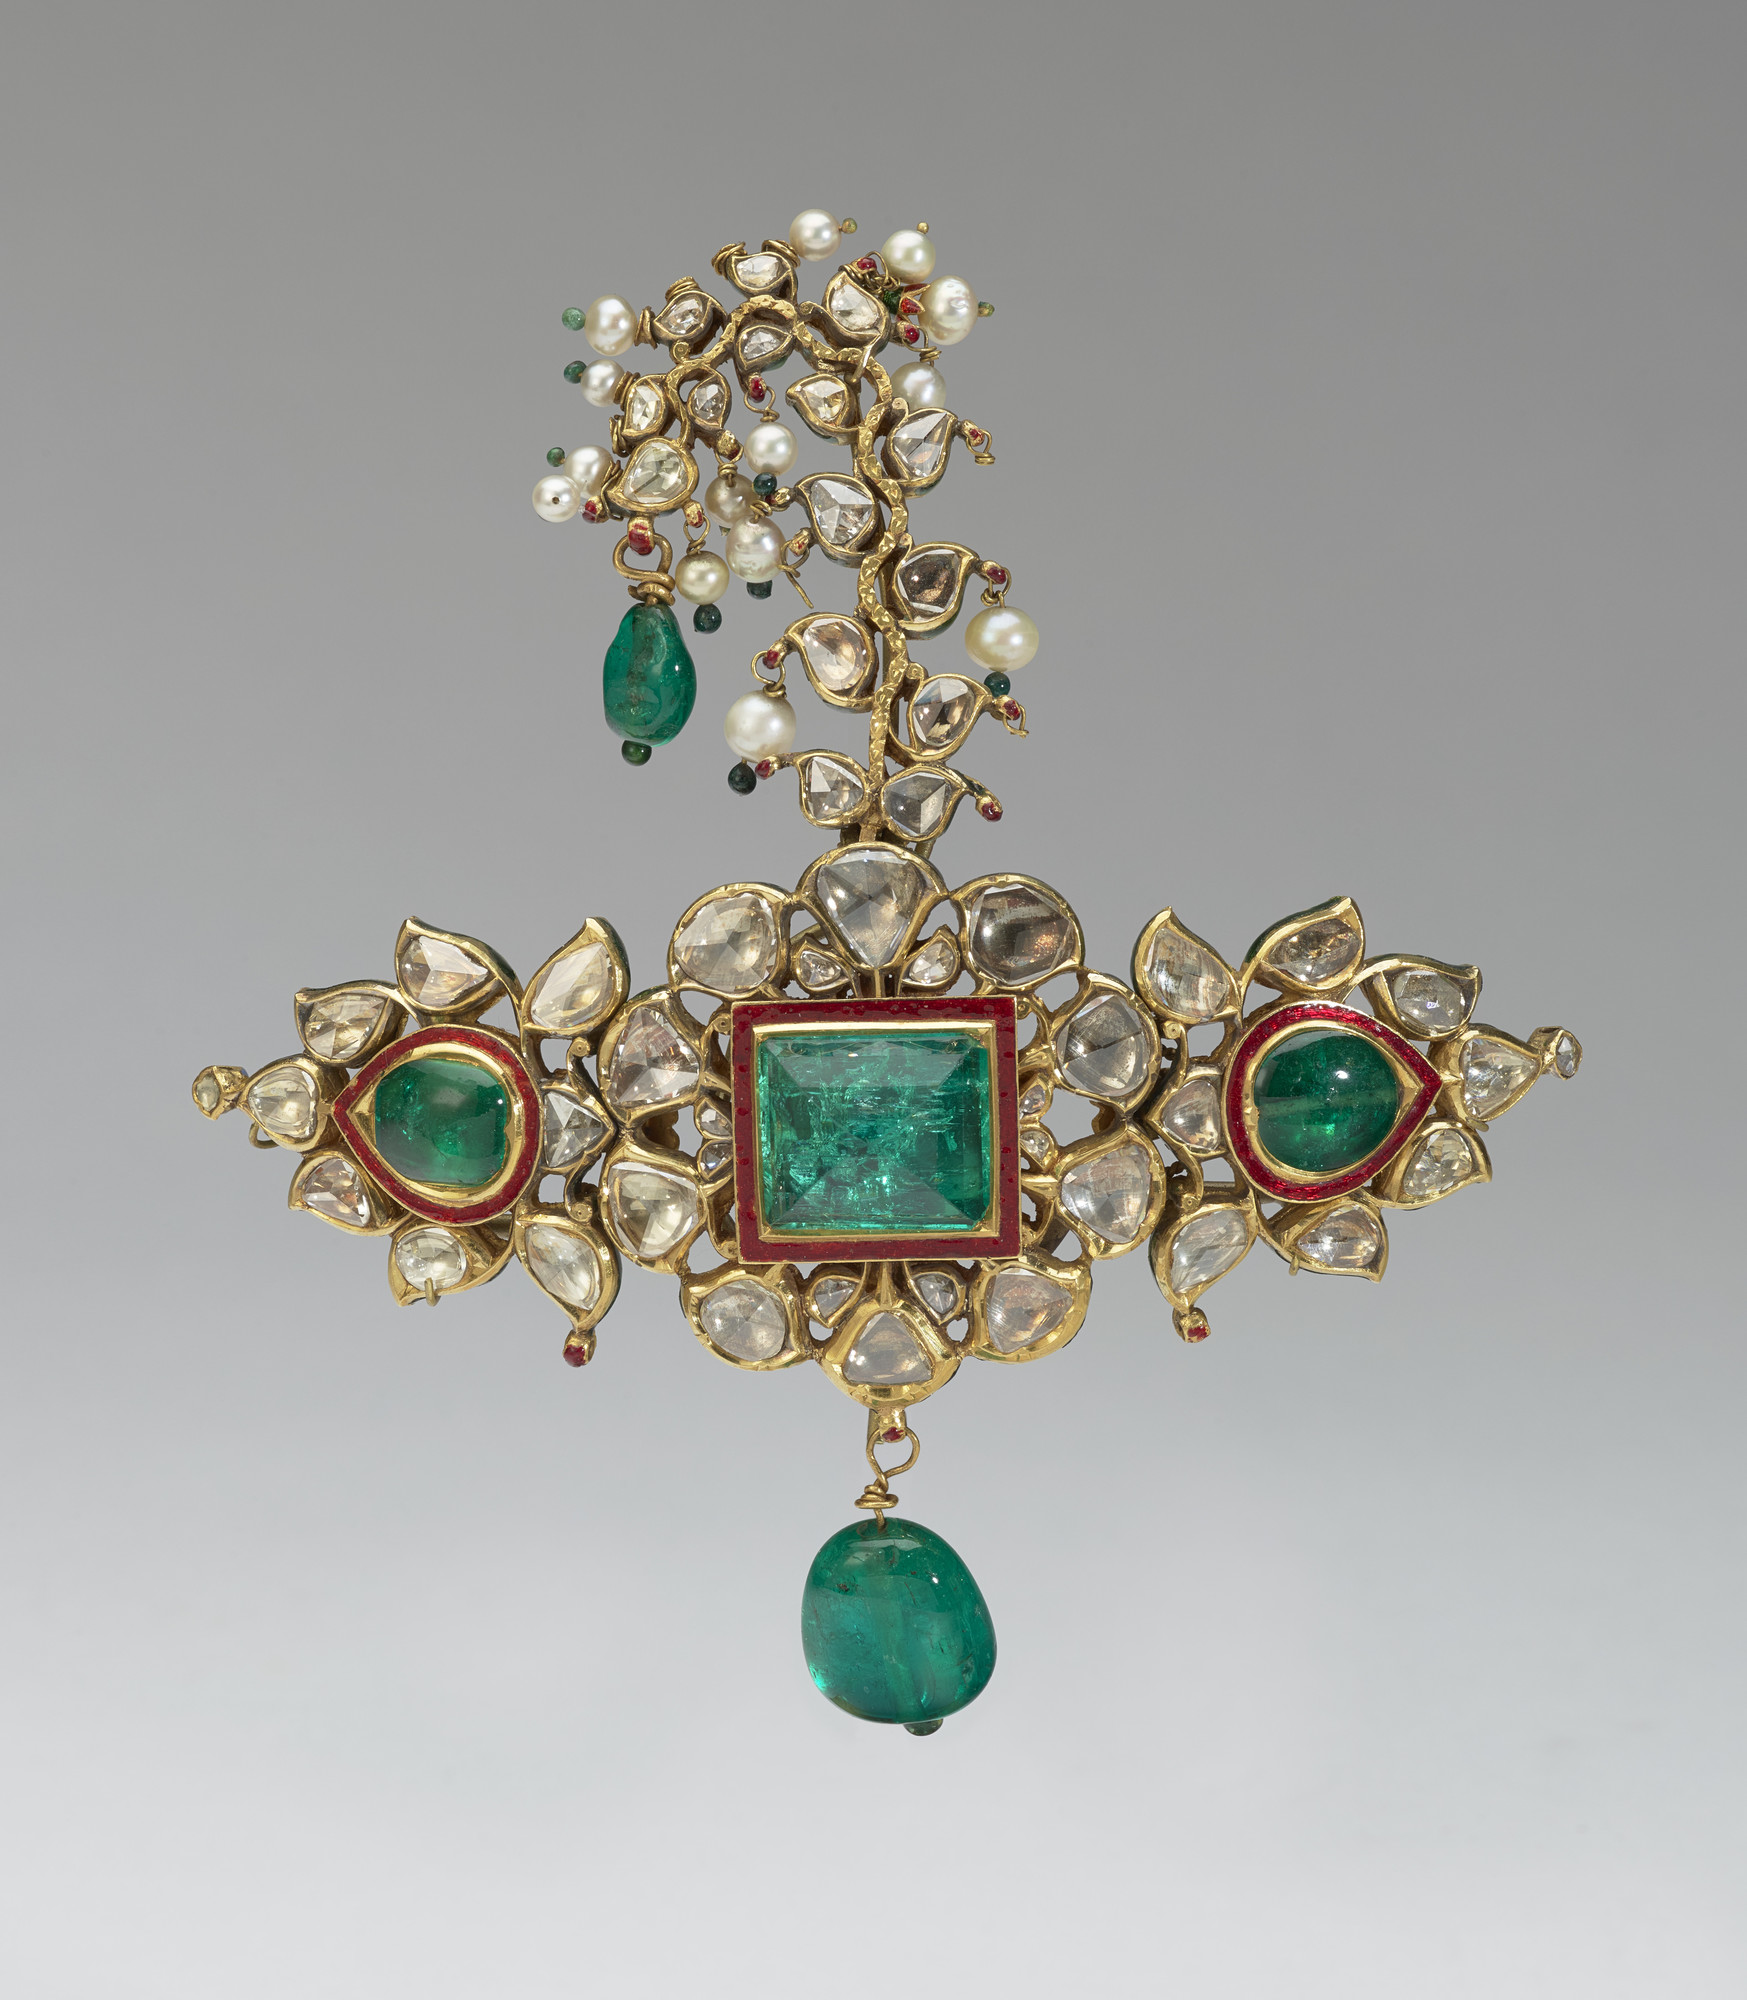 kundan turban ornament with embedded and dangling emeralds Turban Ornament, ca. mid-19th Century, Udaipur, India